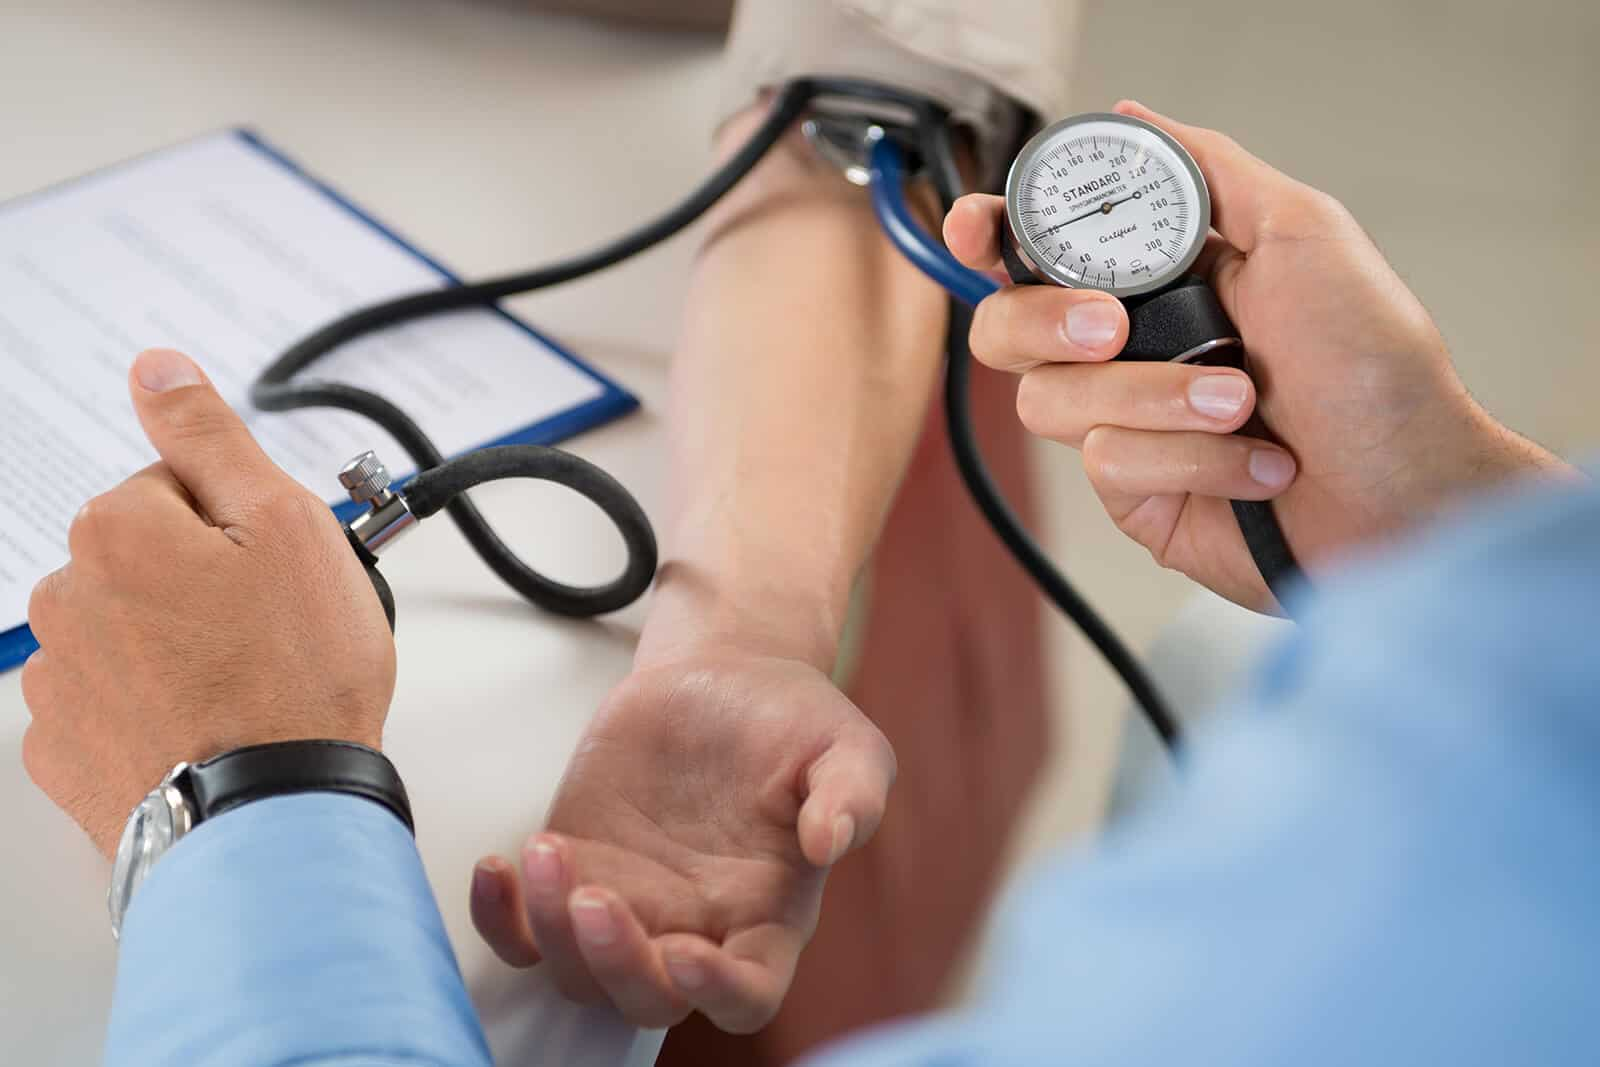 Sleep deprivation affect blood pressure and increase the hypertension risk